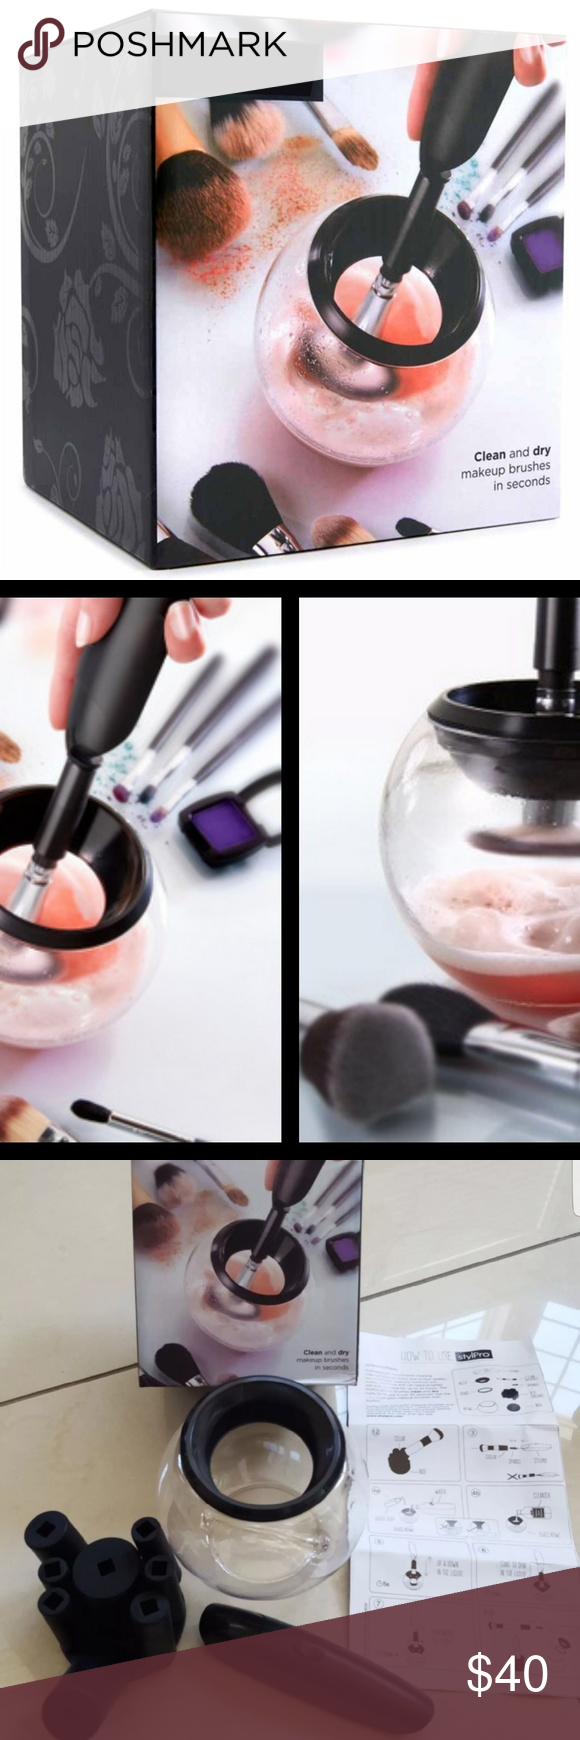 Makeup brush cleaning and dry in sec New and never use